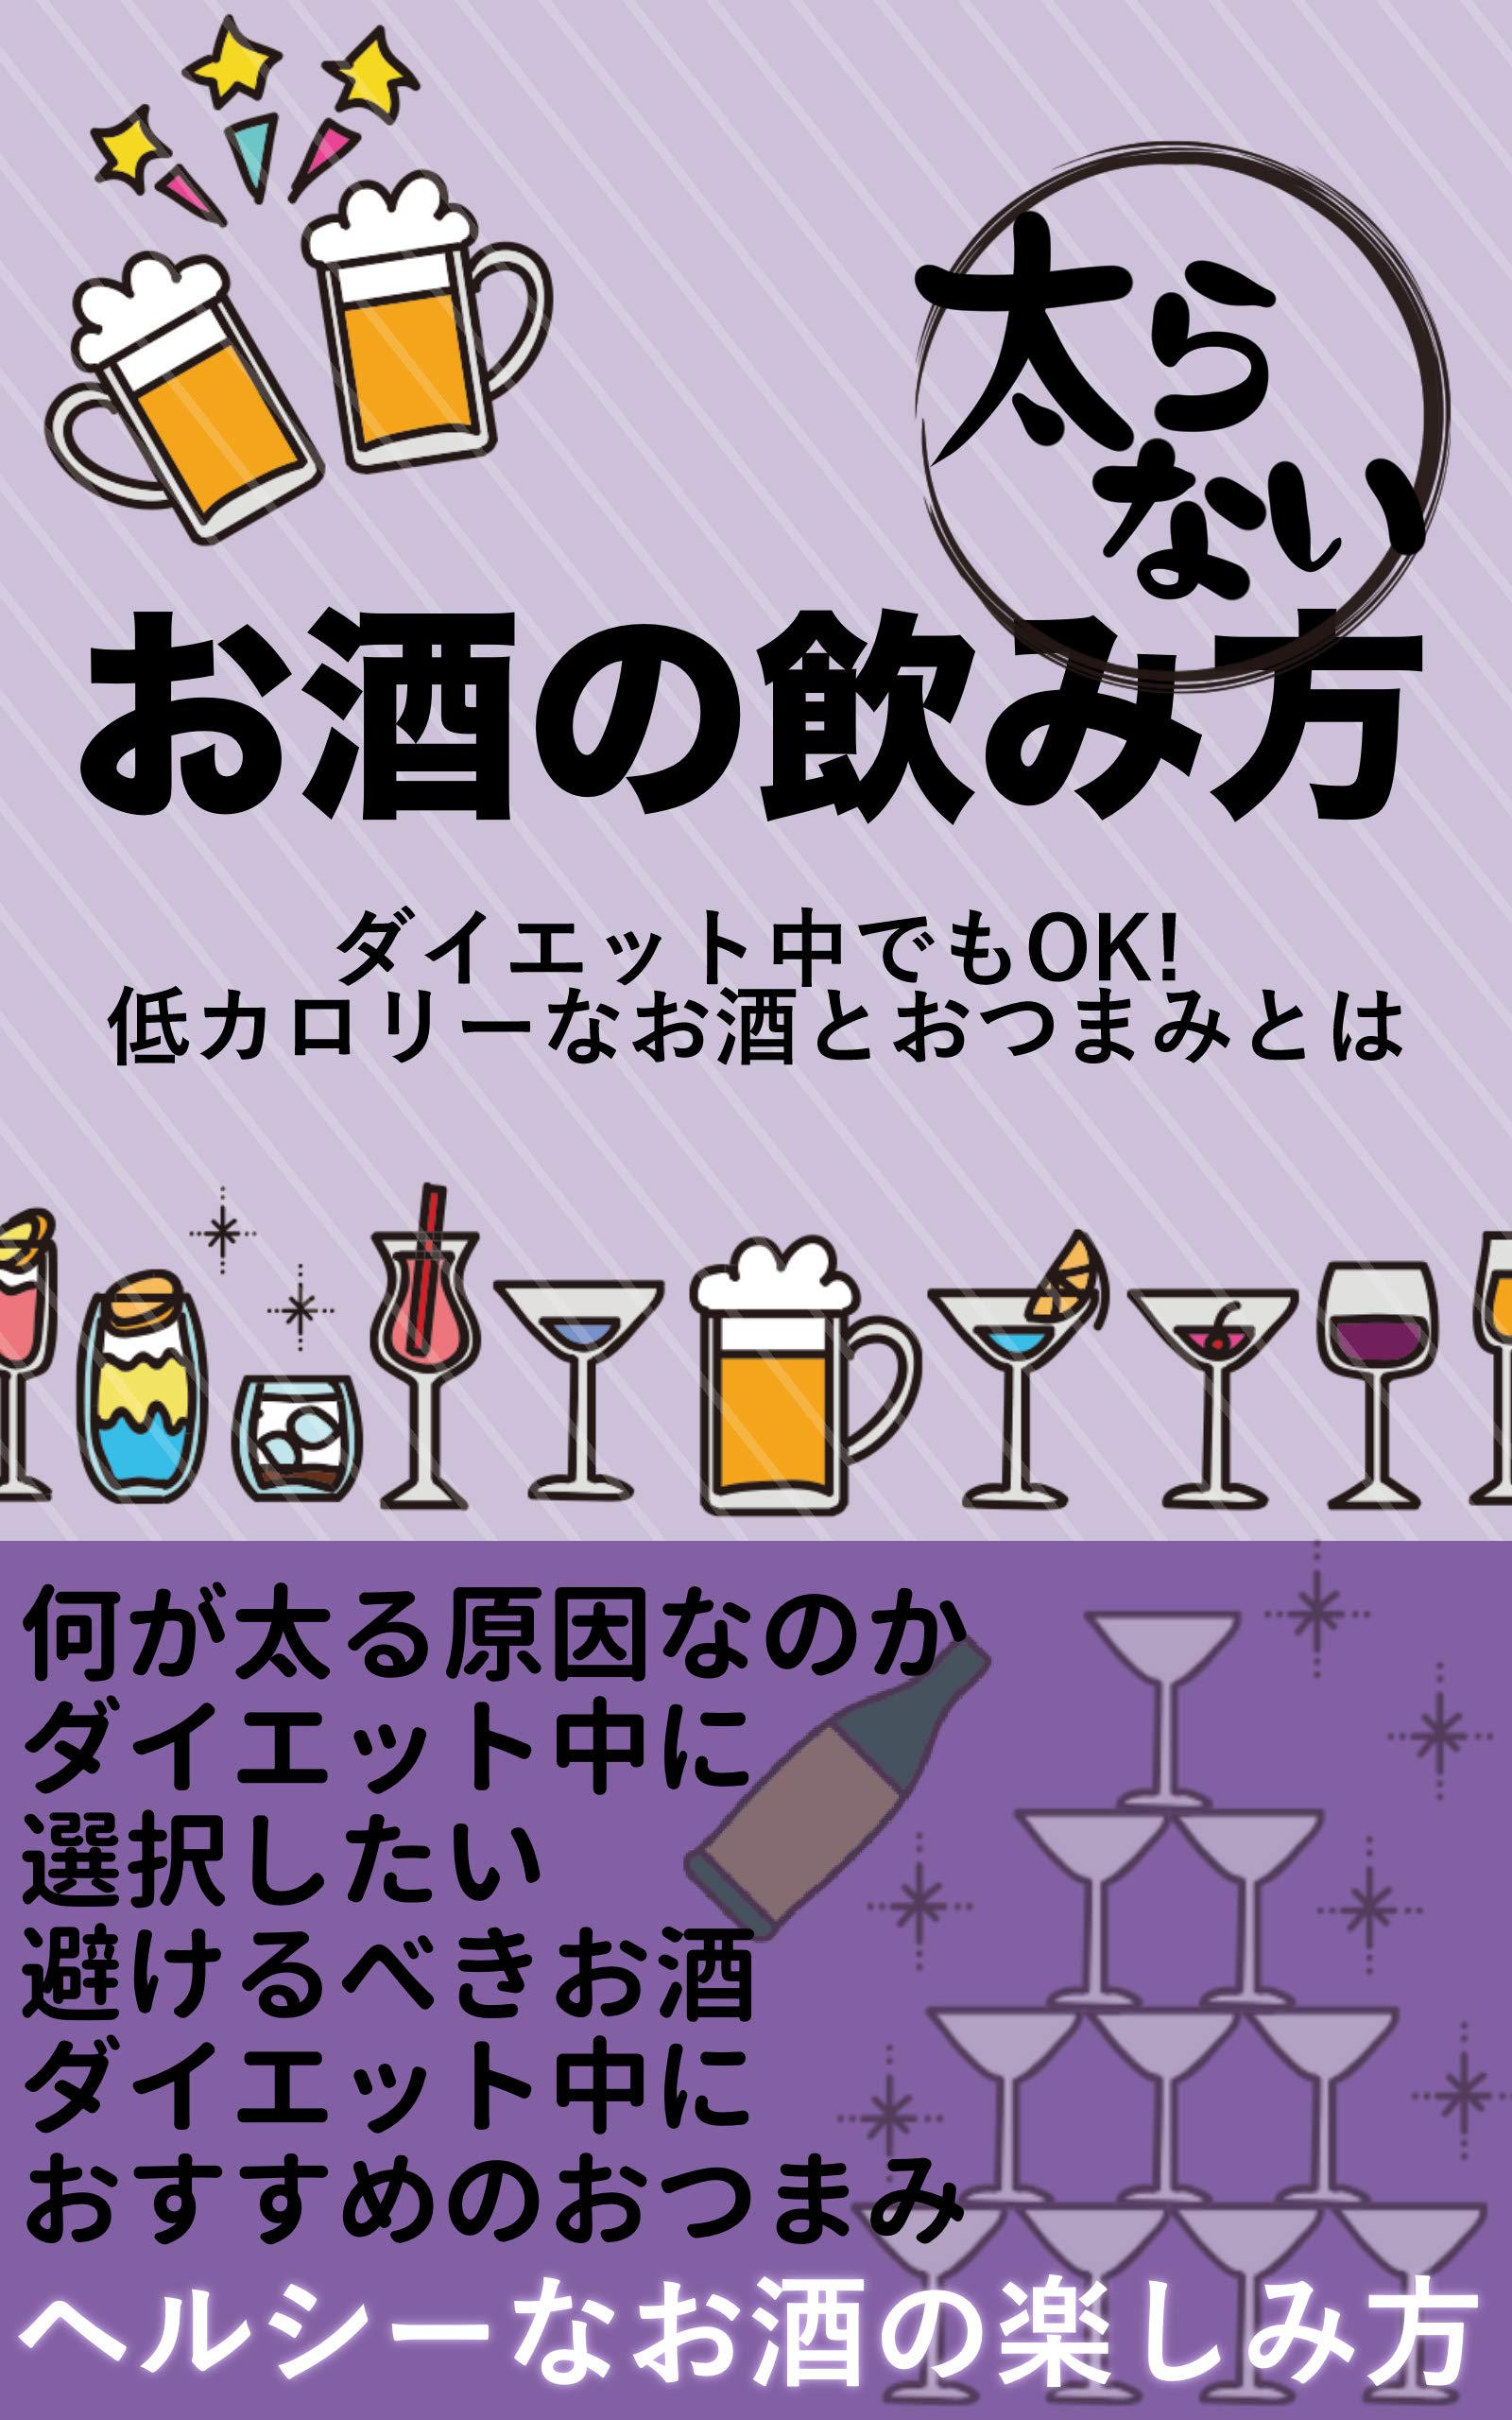 How to drink liquor which does not gain weight: With the low calorie liquor and snacks OK during the diet